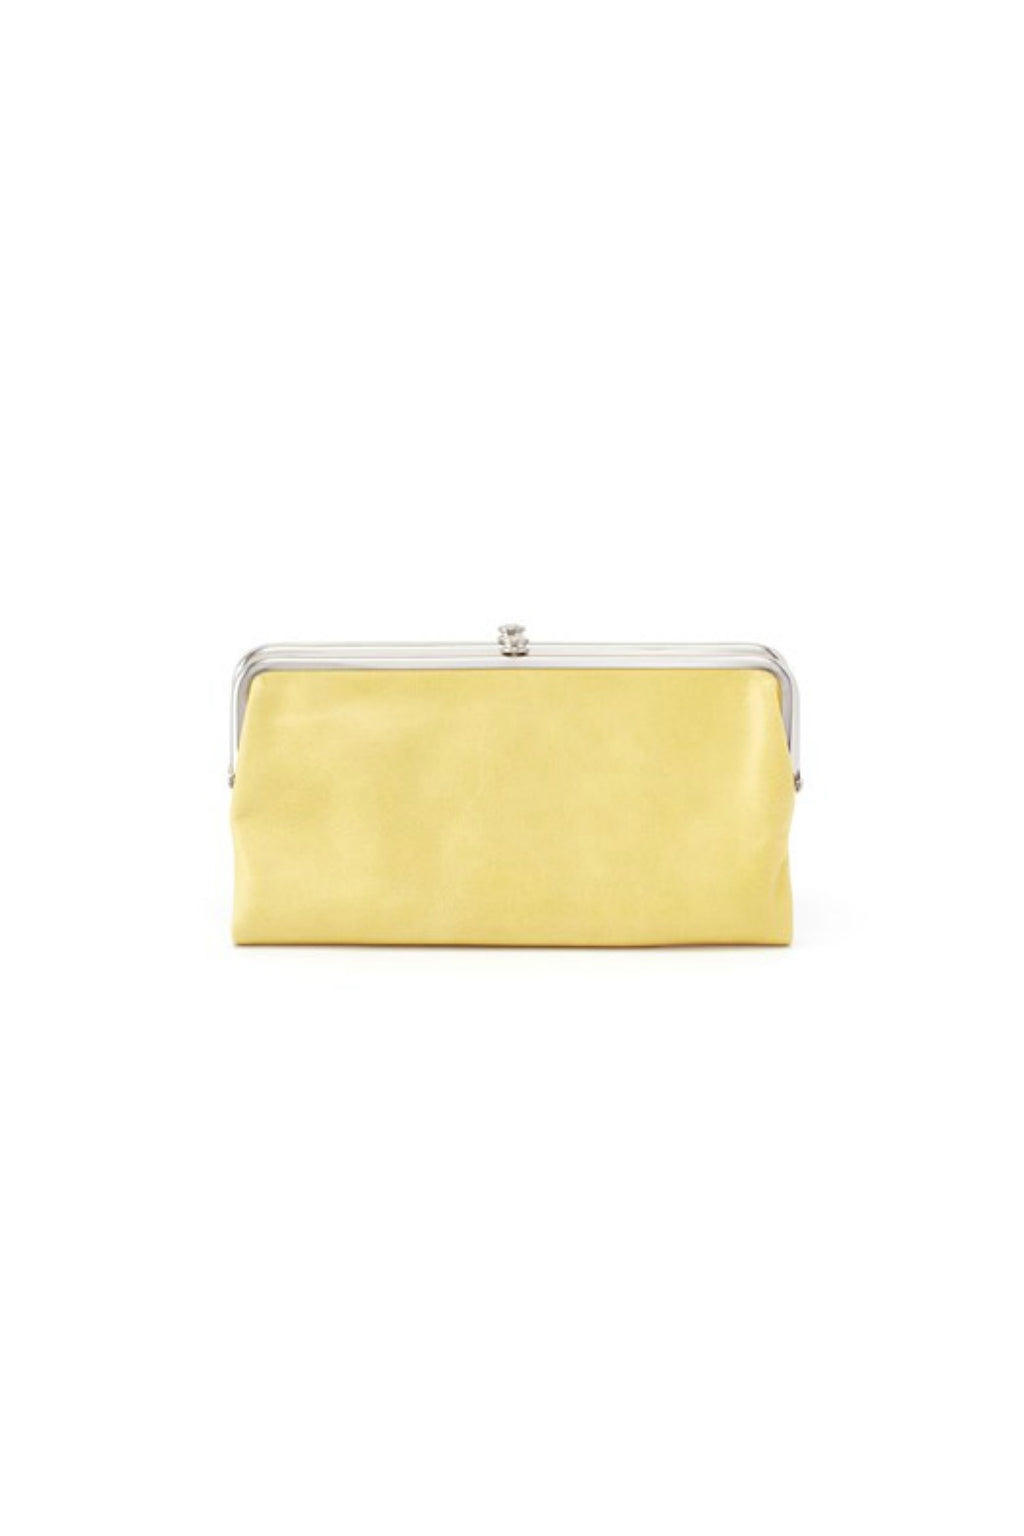 Hobo Lauren Wallet in Lemongrass